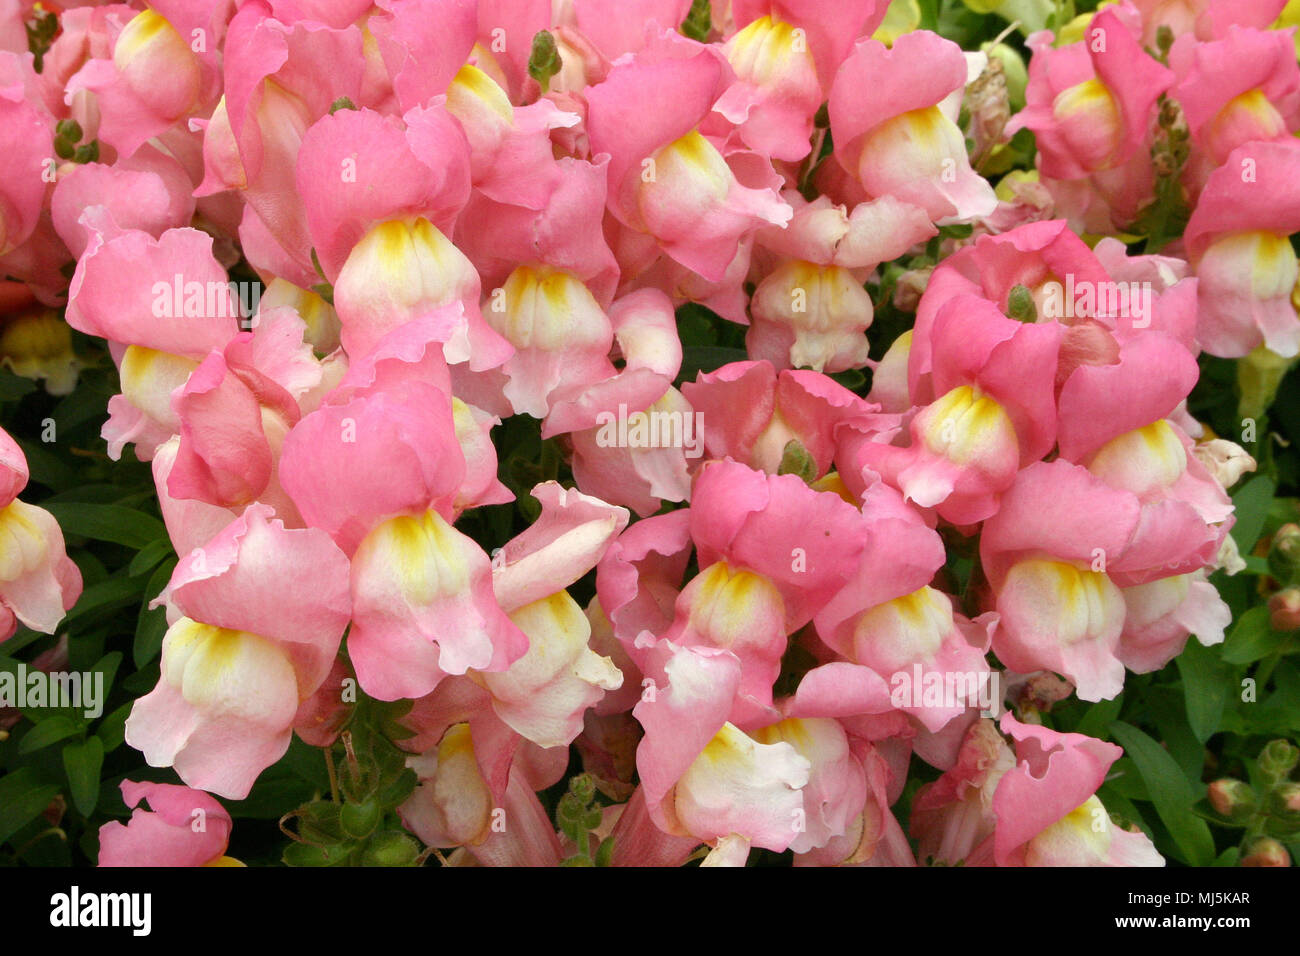 Antirrhinum Is A Genus Of Plants Commonly Known As Dragon Flowers Or